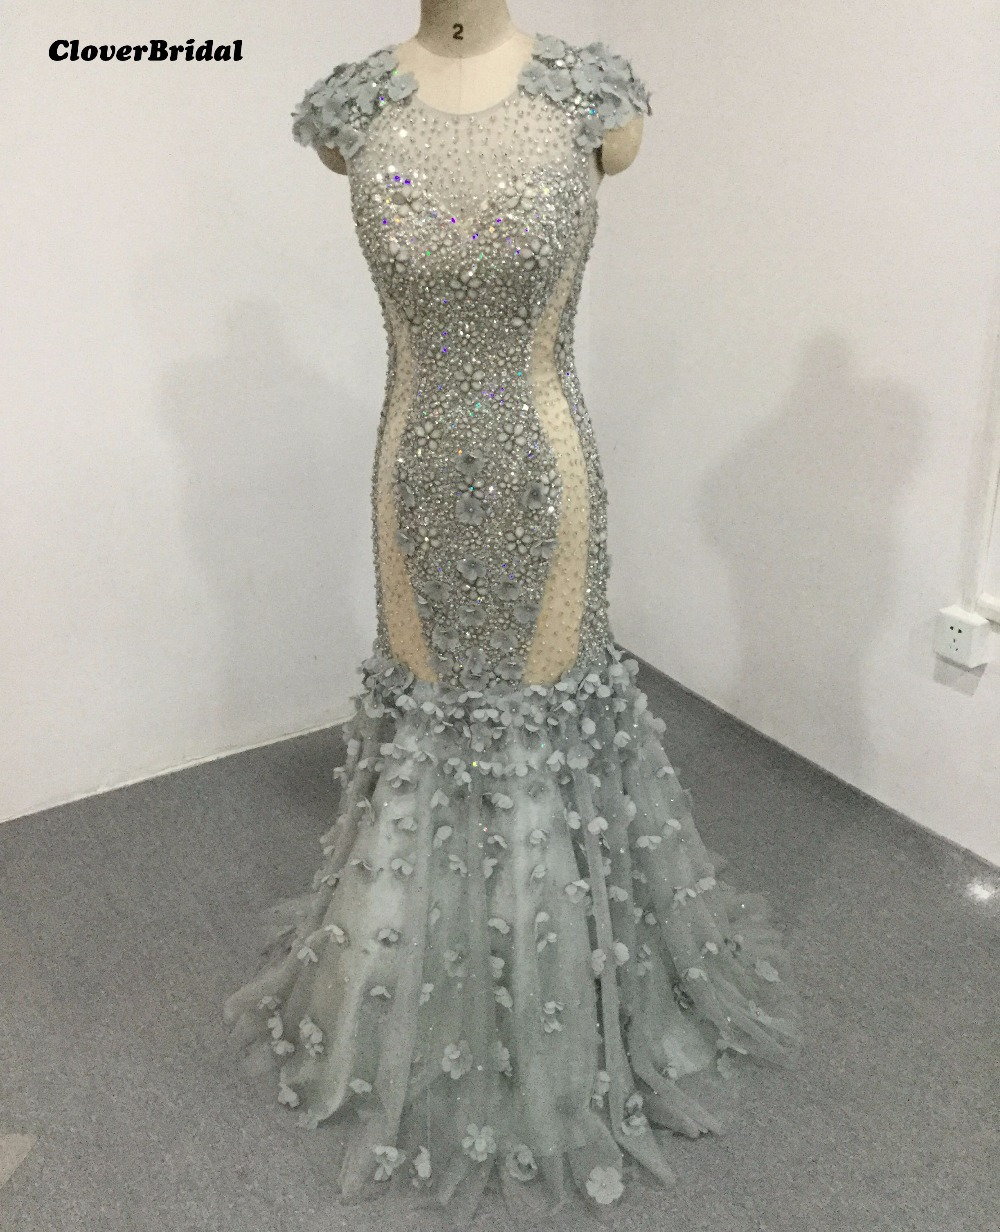 CloverBridal high quality sparkly stones sequins pearls beading grey  mermaid evening dress 2017 floral cap sleeves fa49d3e61